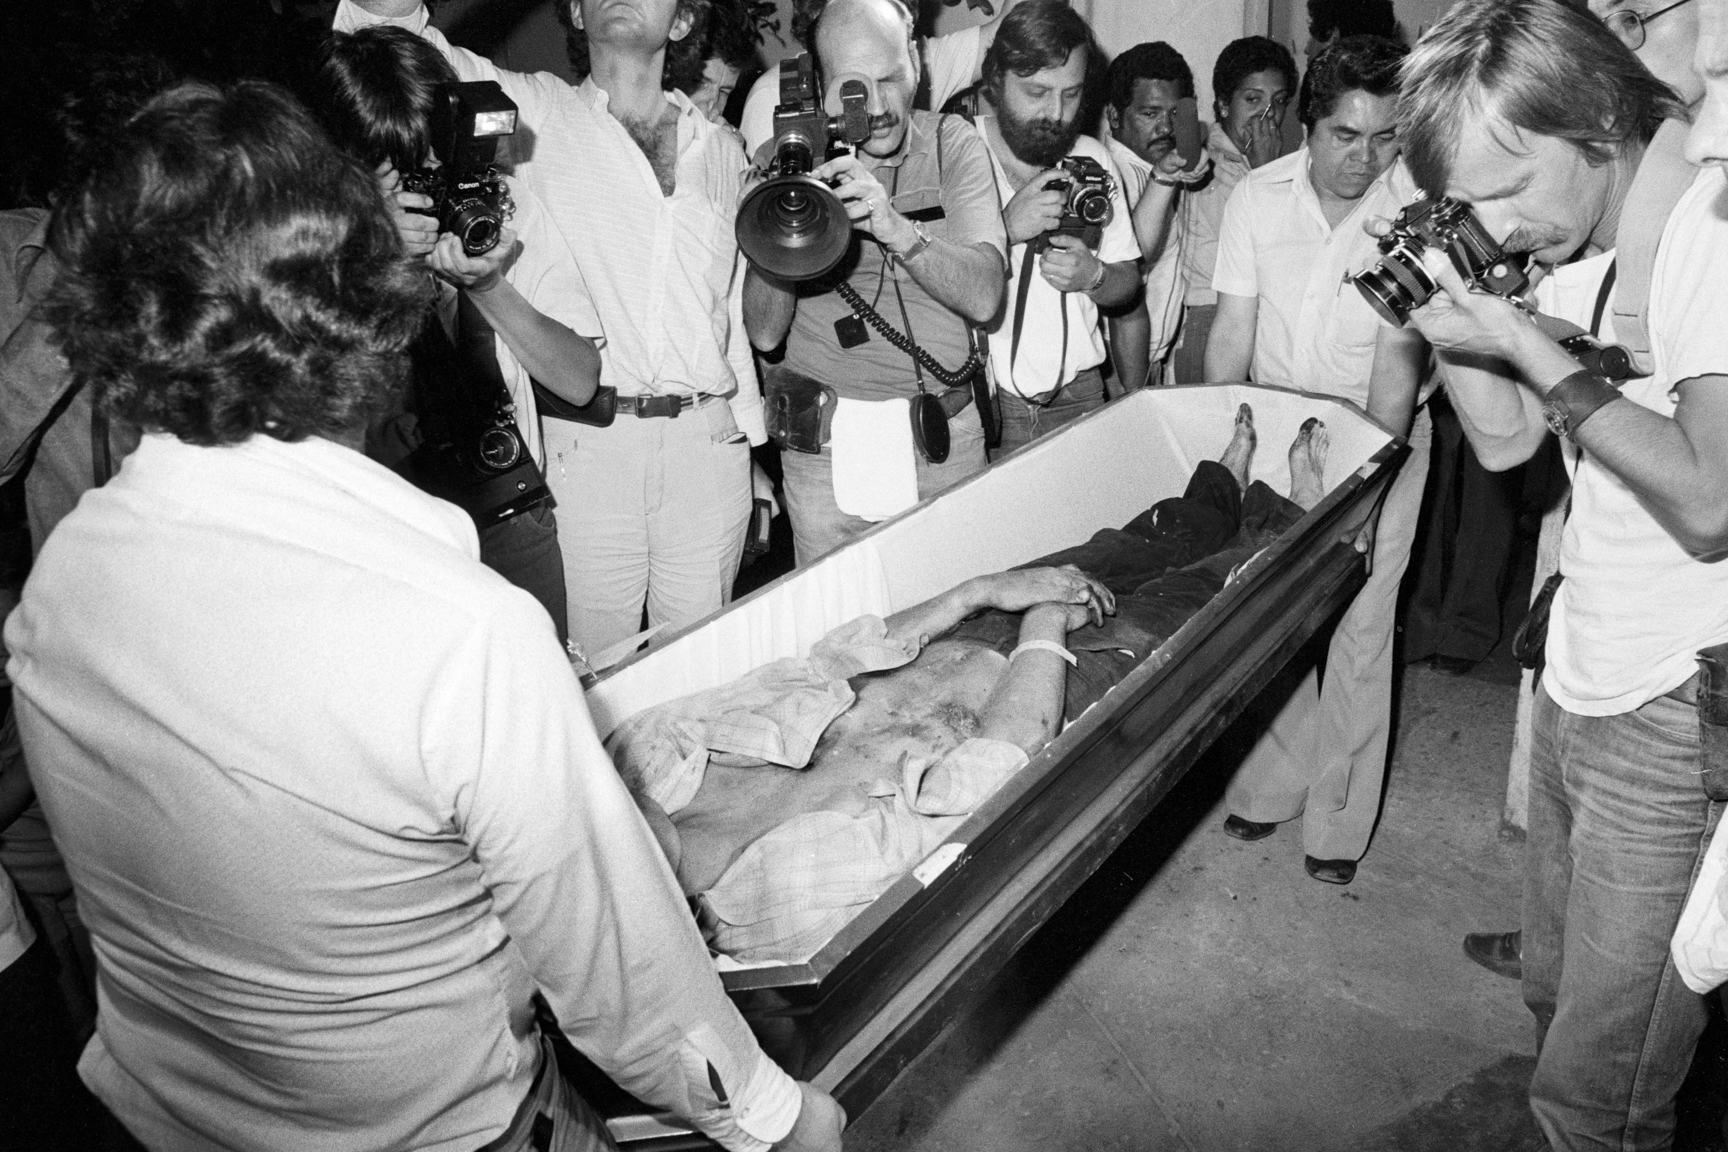 Members of the media film the dead body of a Dutch journalist killed in Chalatenango department March 19, 1982 in a funeral parlor in San Salvador, El Salvador. Four Dutch journalists were shot and killed by Salvadoran security forces while they were pursuing an interview with leftist guerrillas from the Farabundo Martí National Liberation Front, or FMLN. Jacobus (Koos) Koster, Hans Ter Laan, Jan Quiper and Johannes (Joop) Willemsen were shot at close range and suspicions lie with the Salvadoran security forces which followed the journalists from San Salvador to Santa Rita, Chalatenango and killed them in a rural area.